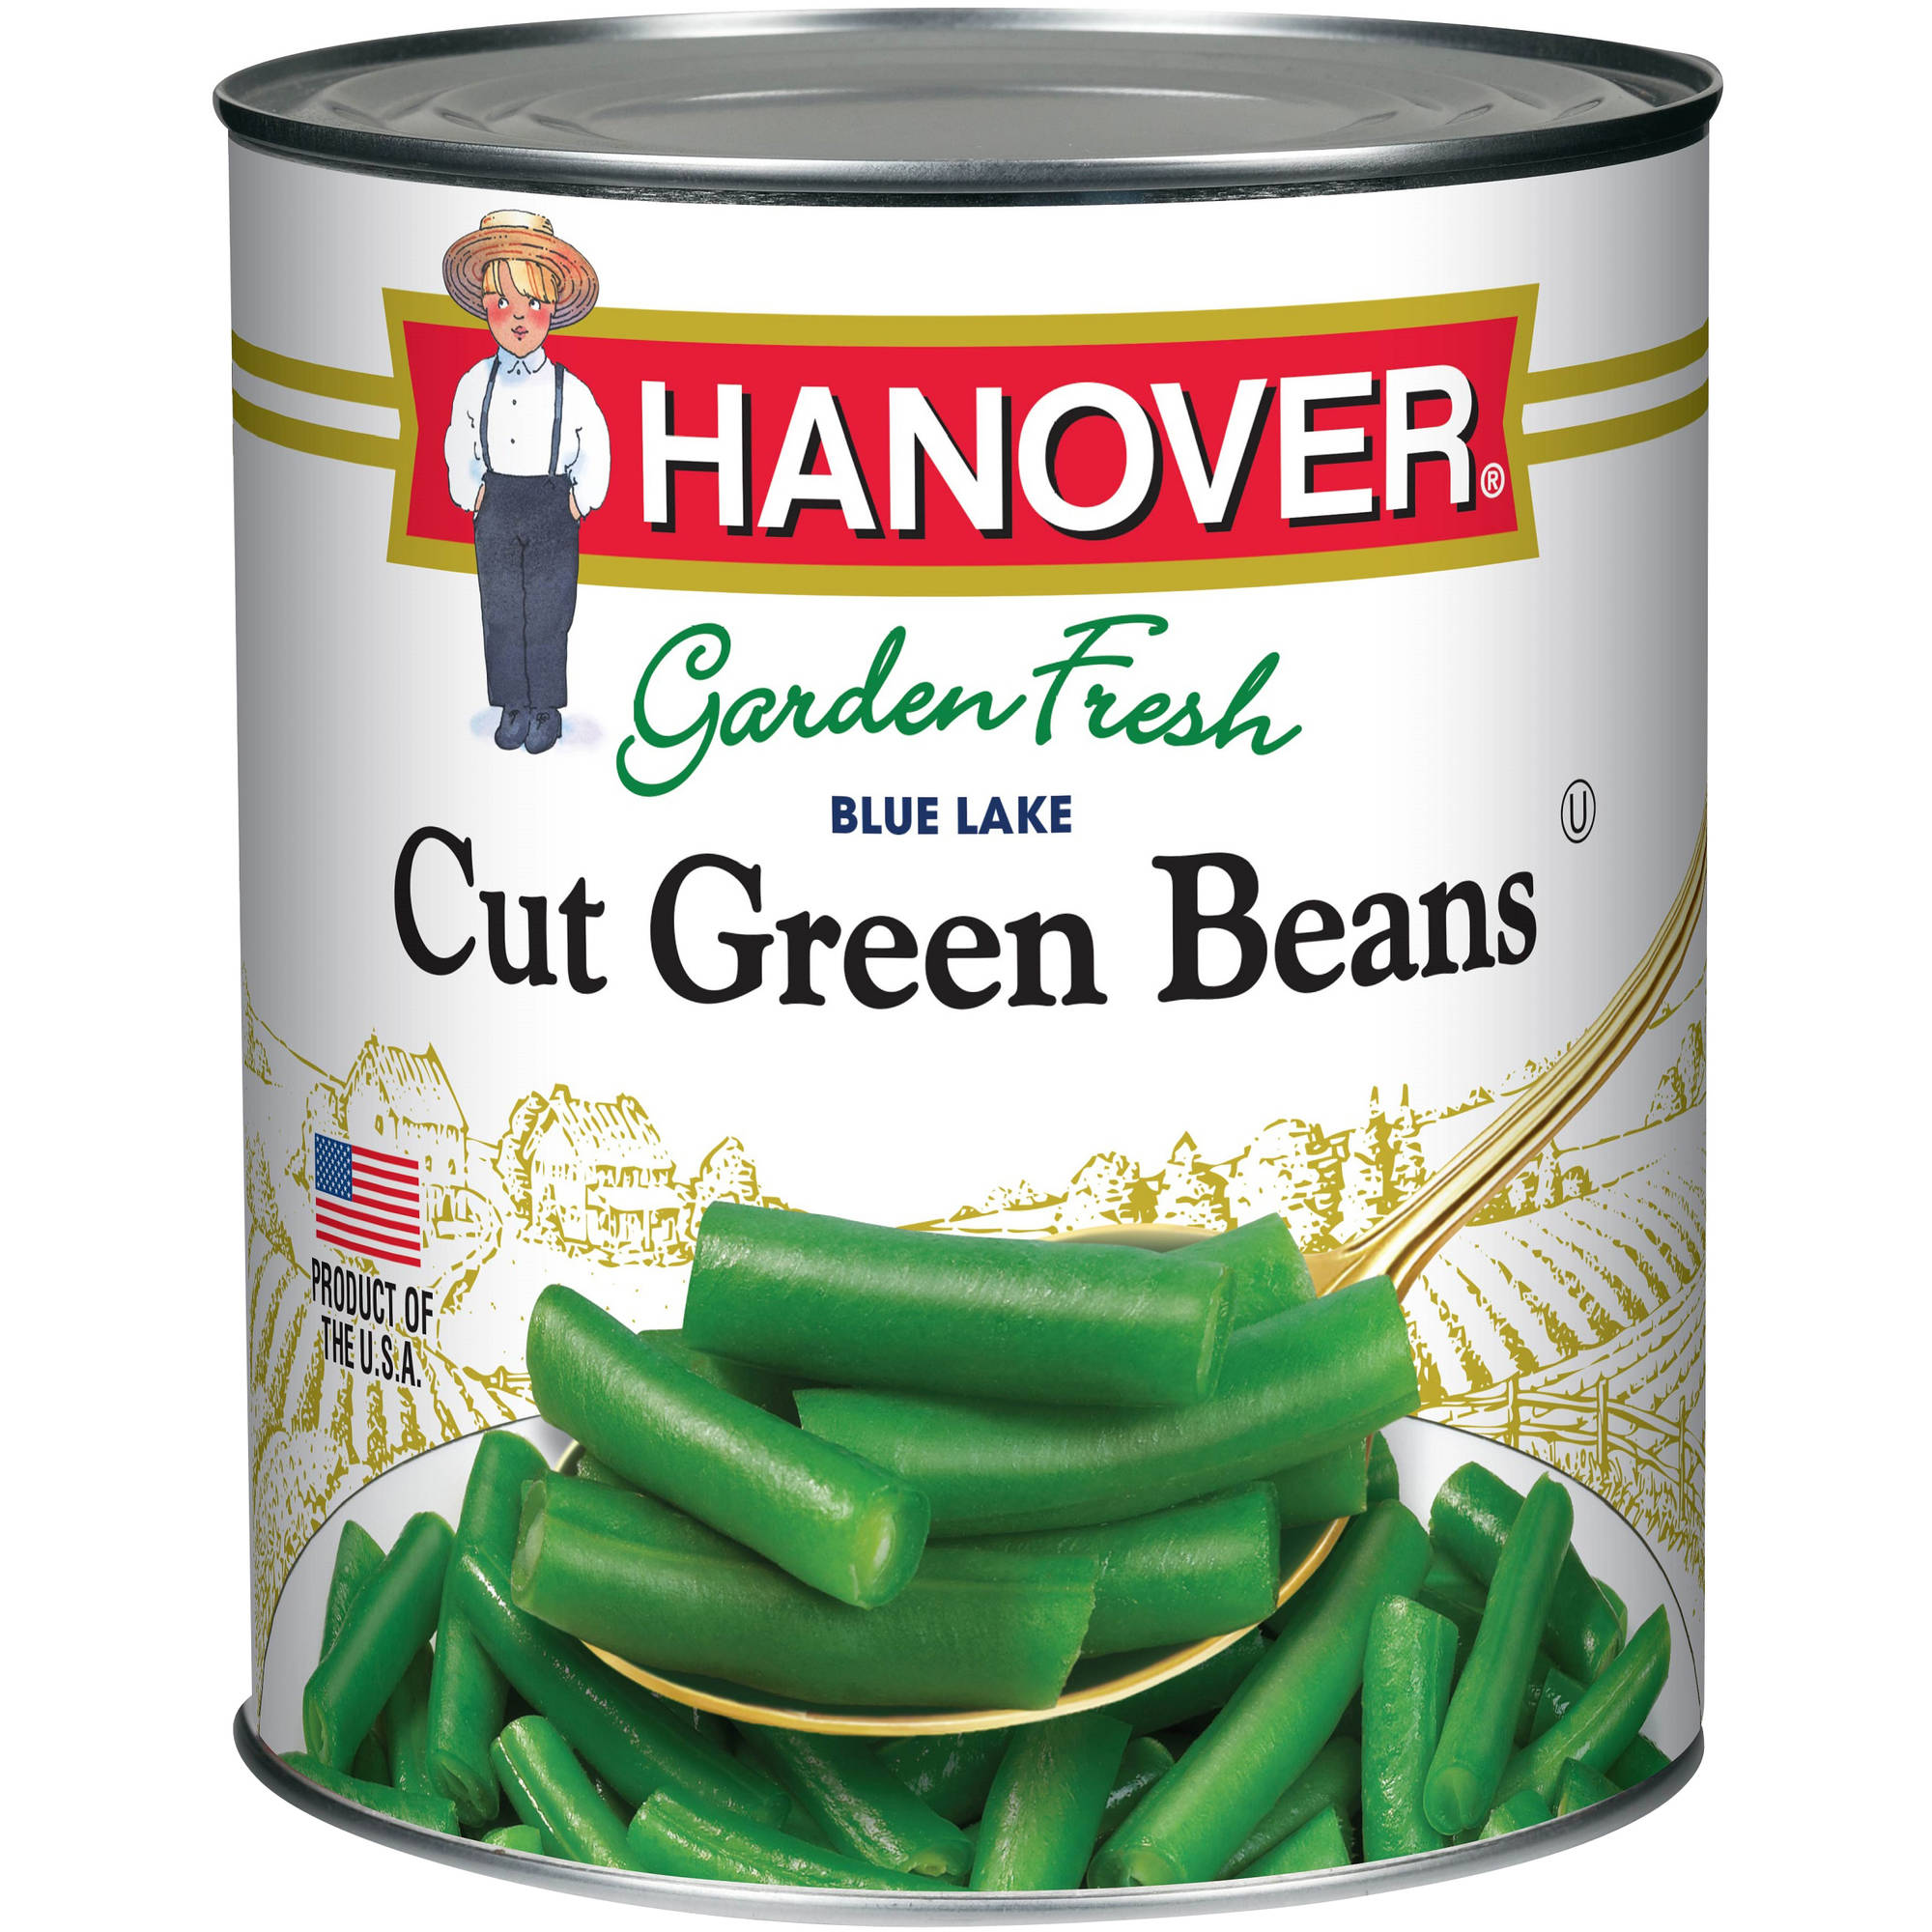 Hanover Garden Fresh Blue Lake Cut Green Beans, 16 oz